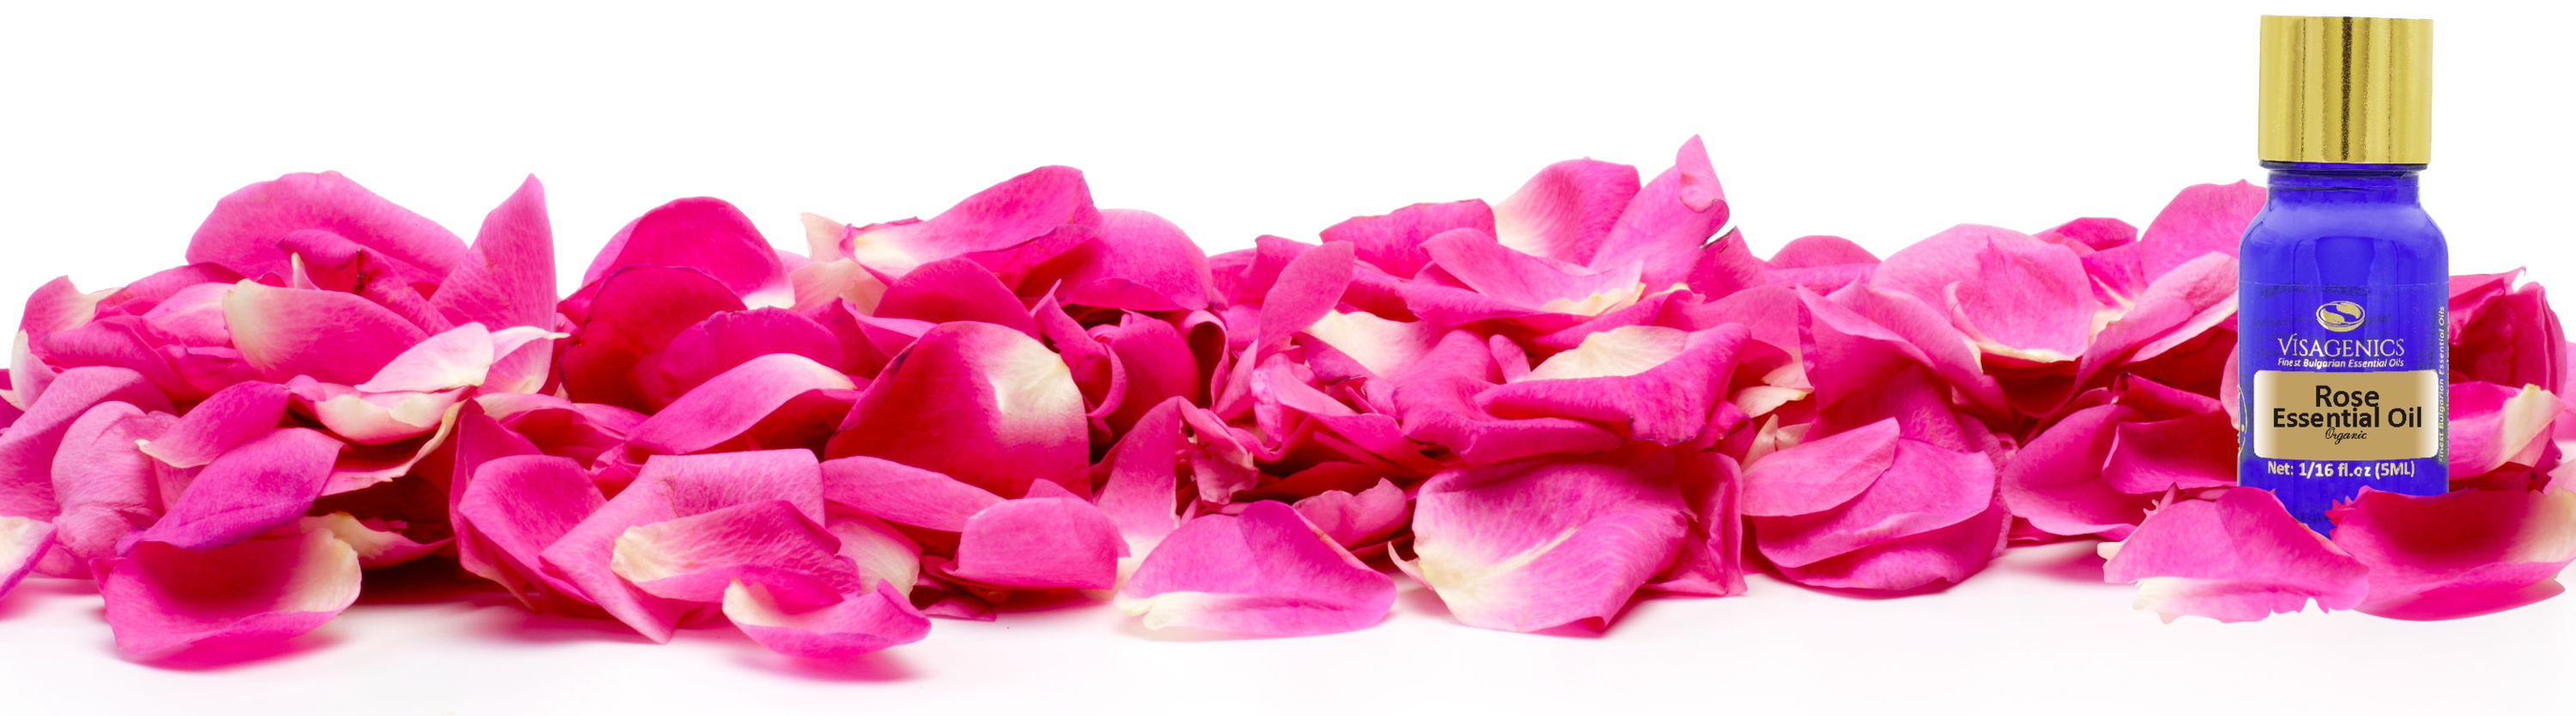 The best Rose Oil that nature has to offer